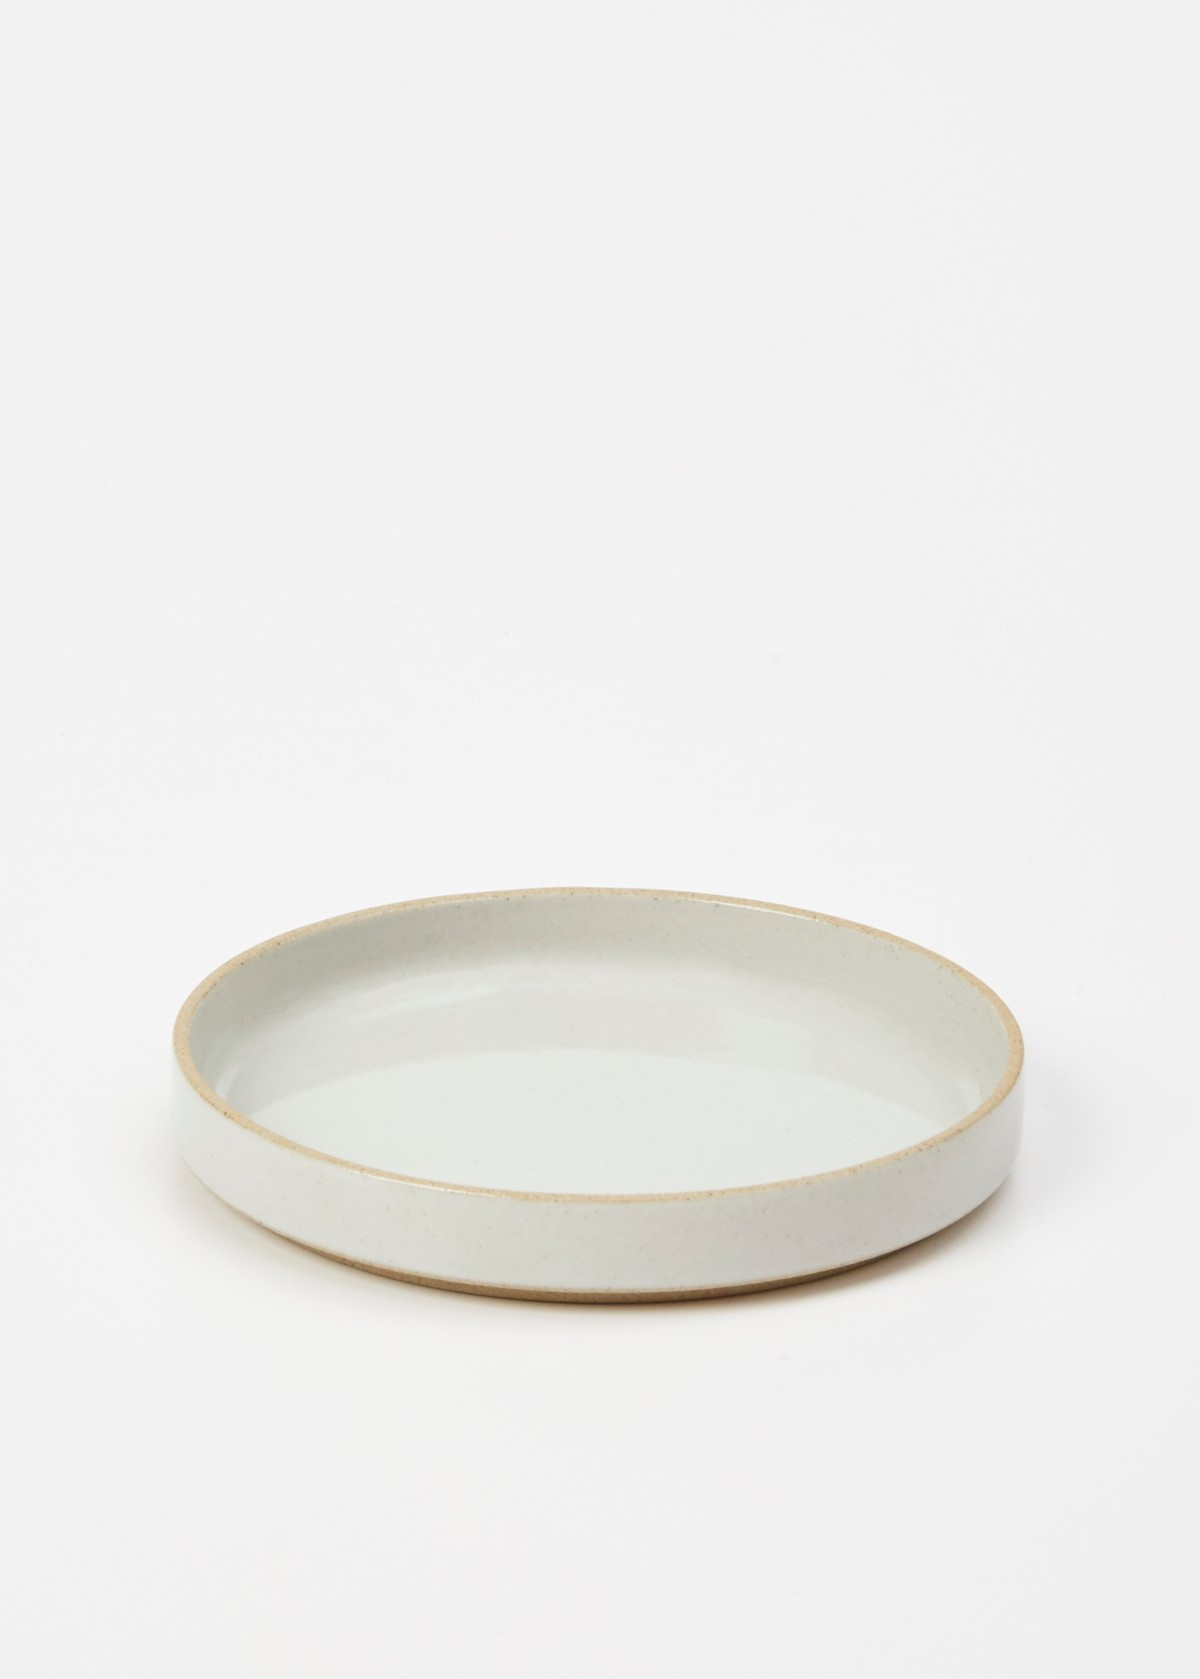 small hasami plate